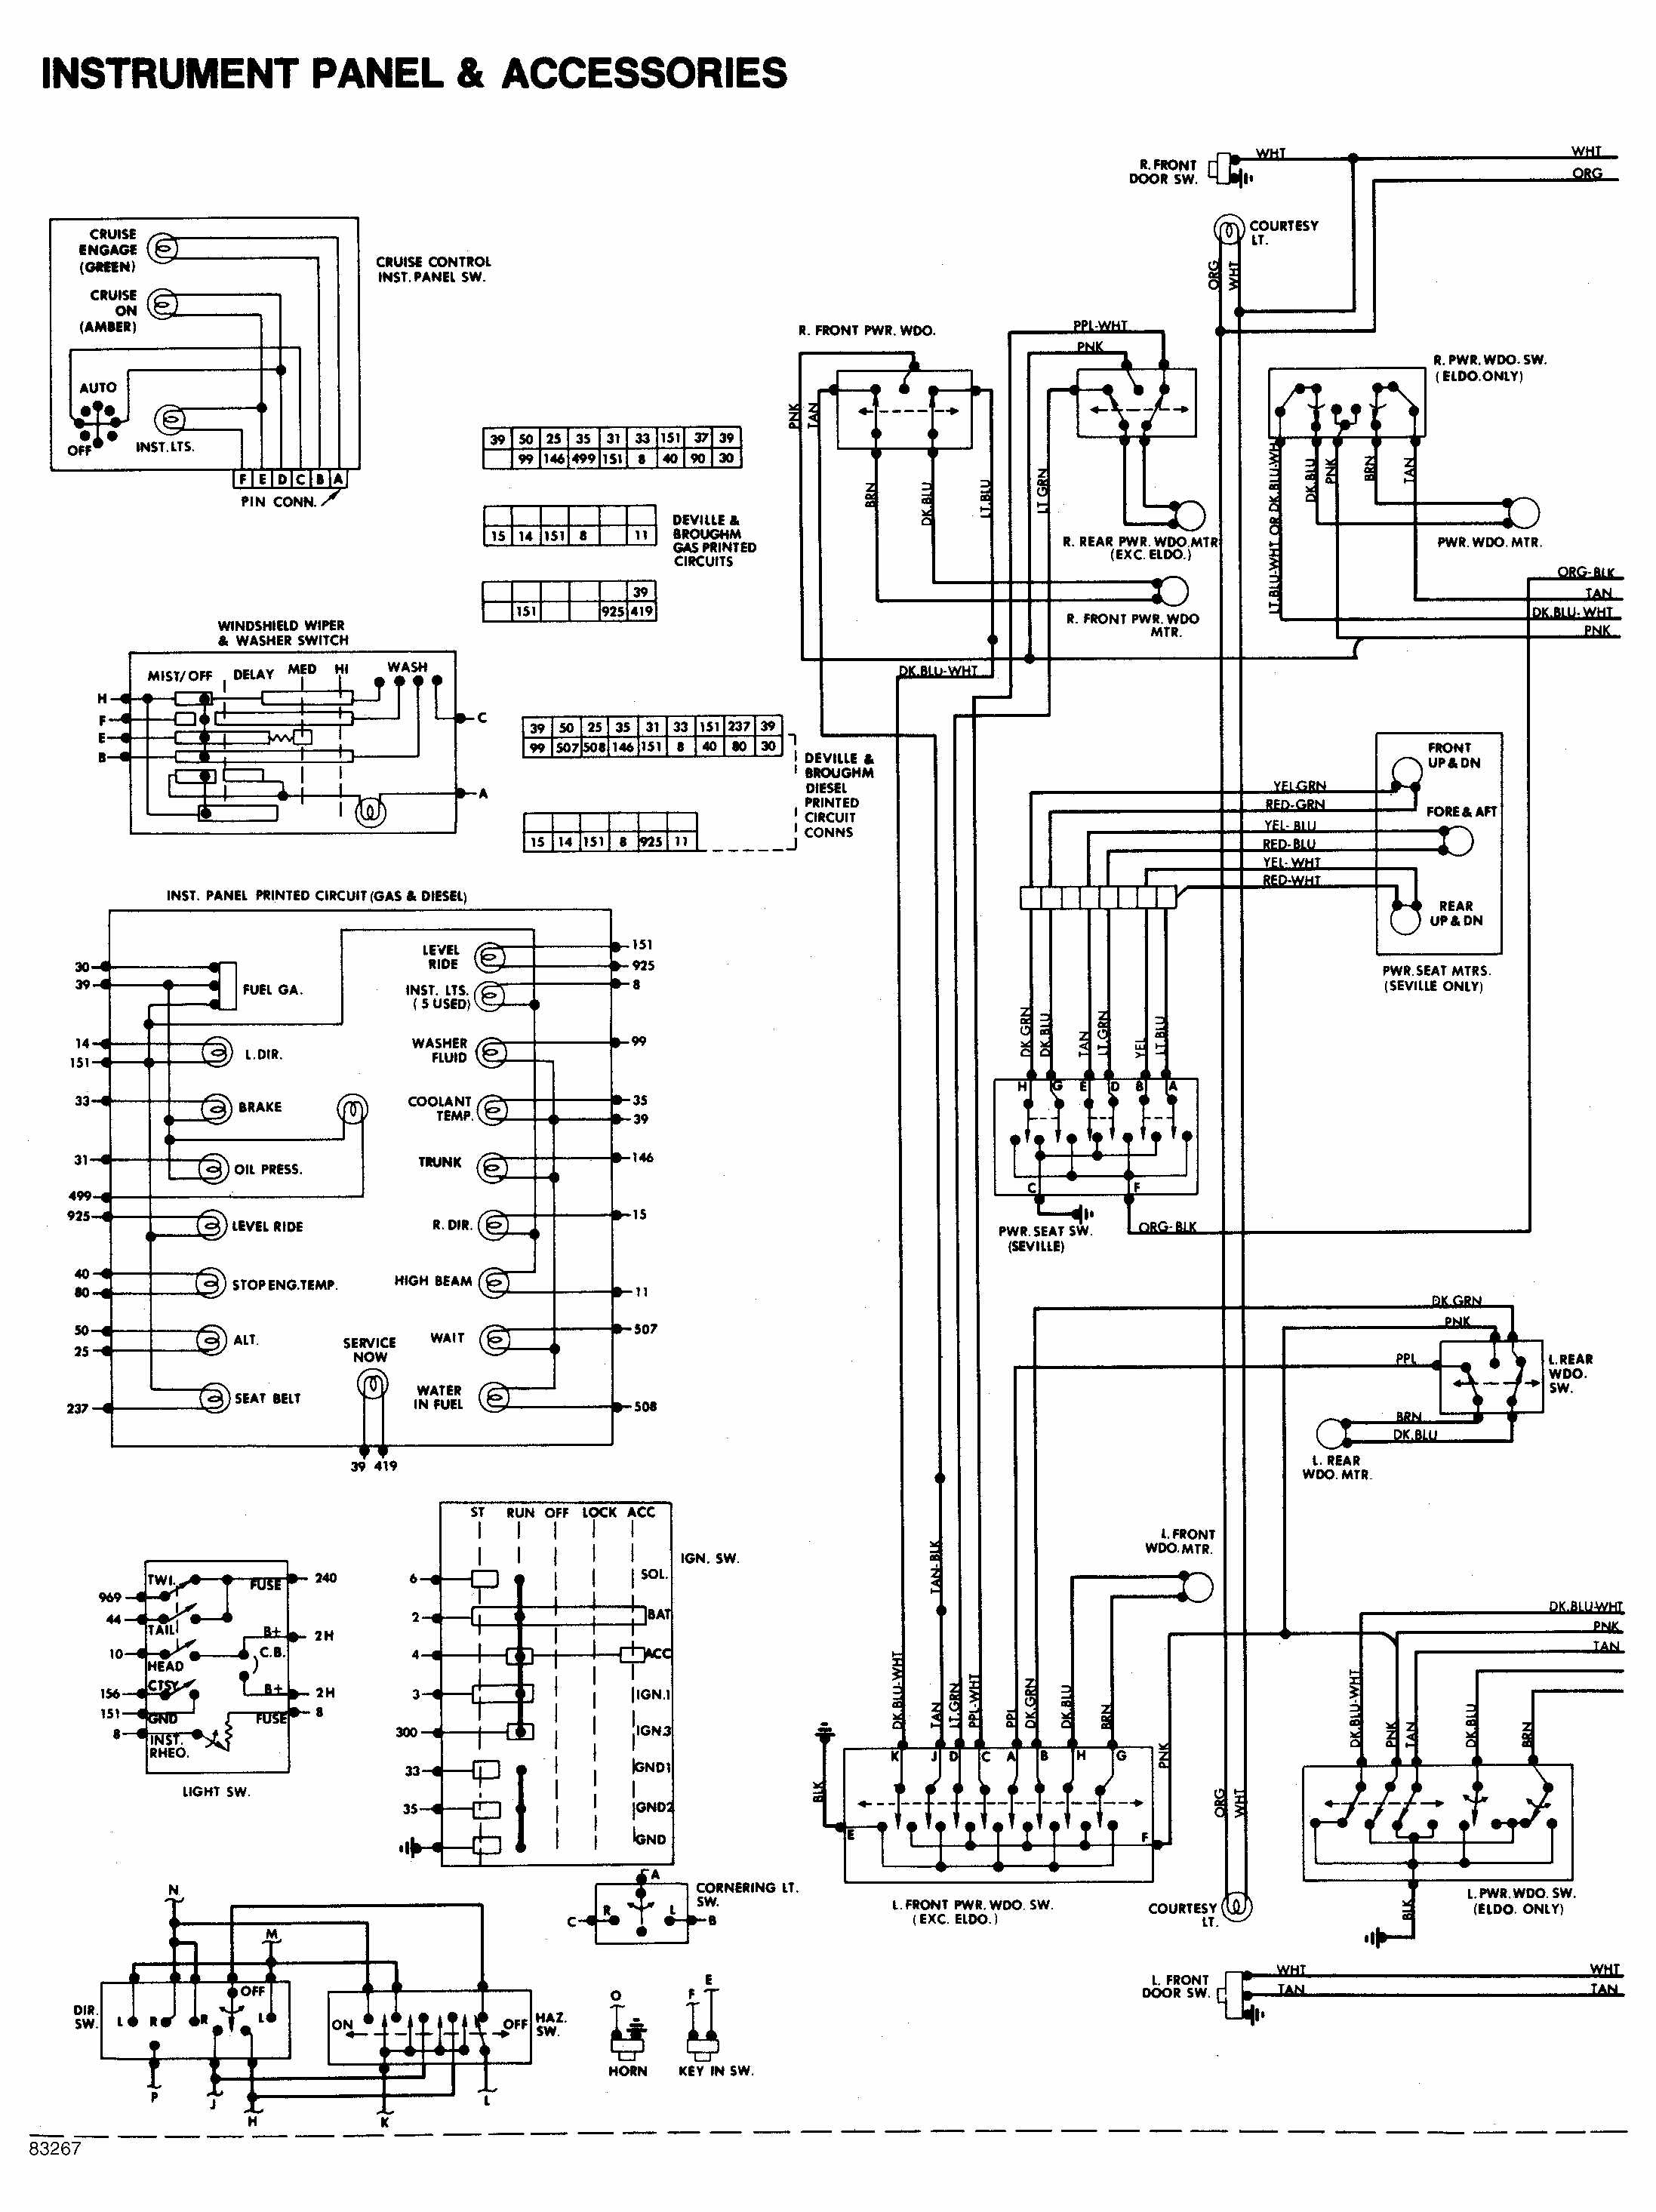 chevy diagrams Chevy S10 Vacuum Line Diagram Vacuum Hose Routing Diagram